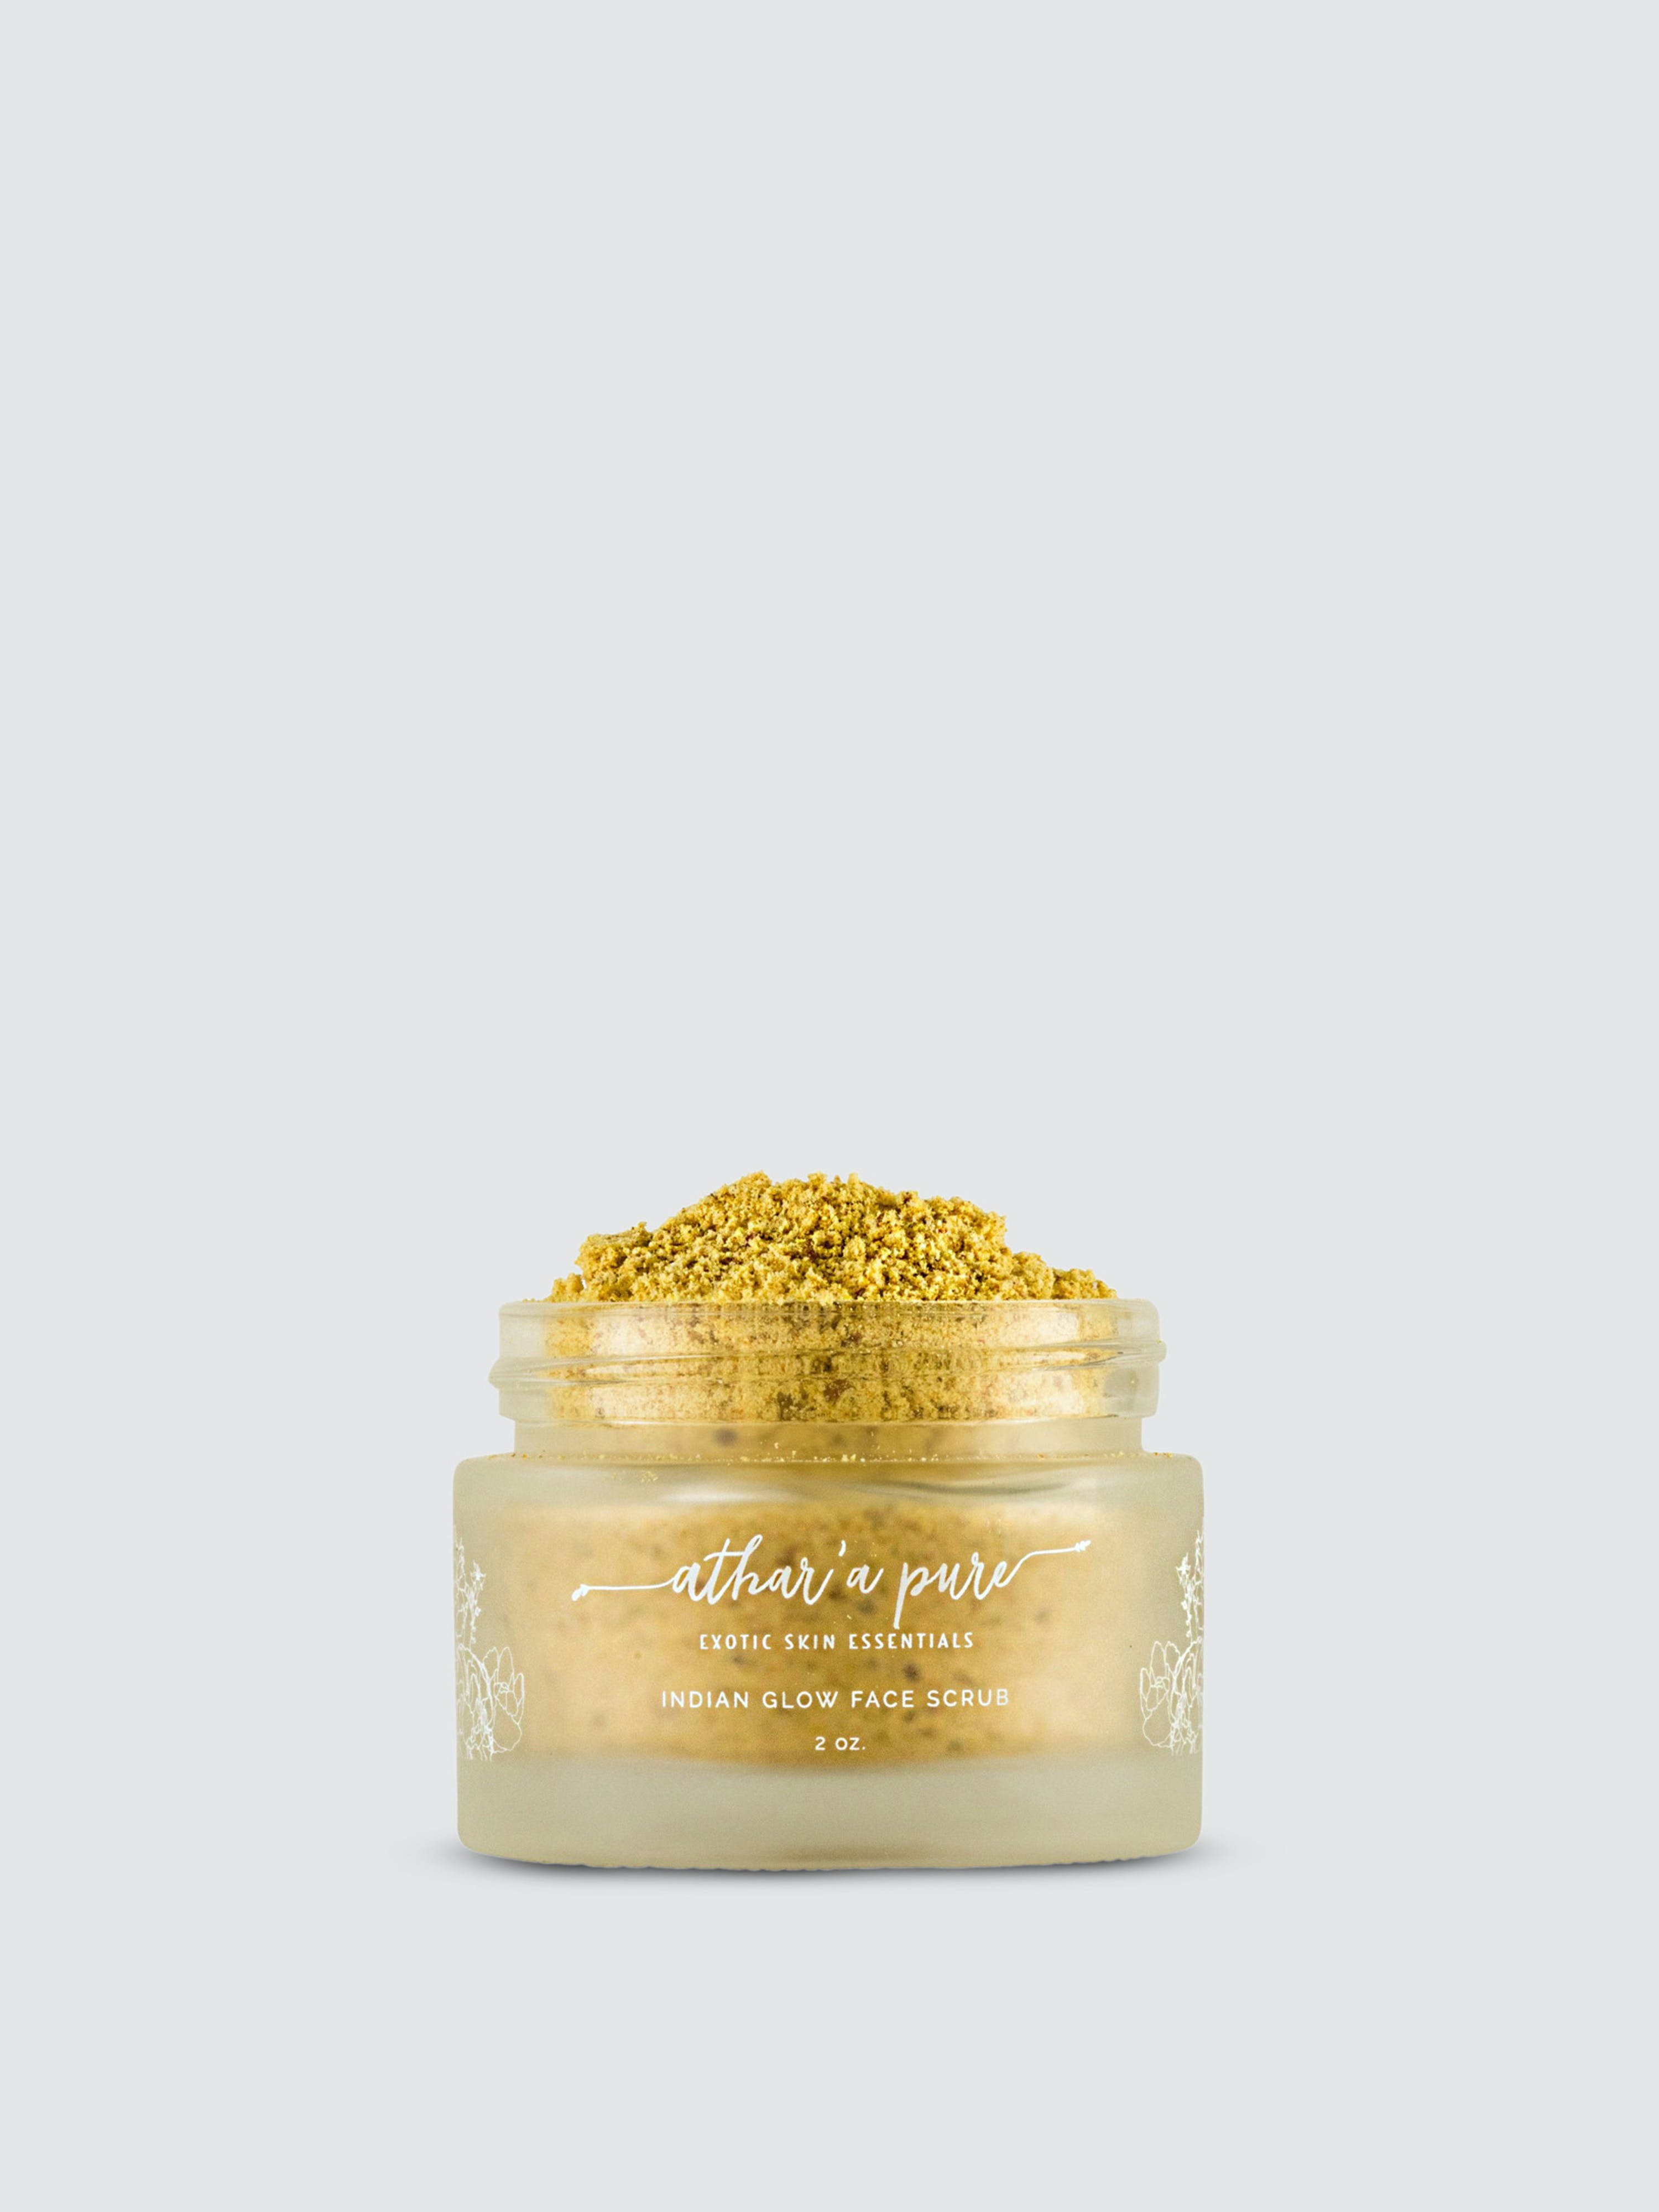 Athar'a Pure Indian Glow Face Scrub